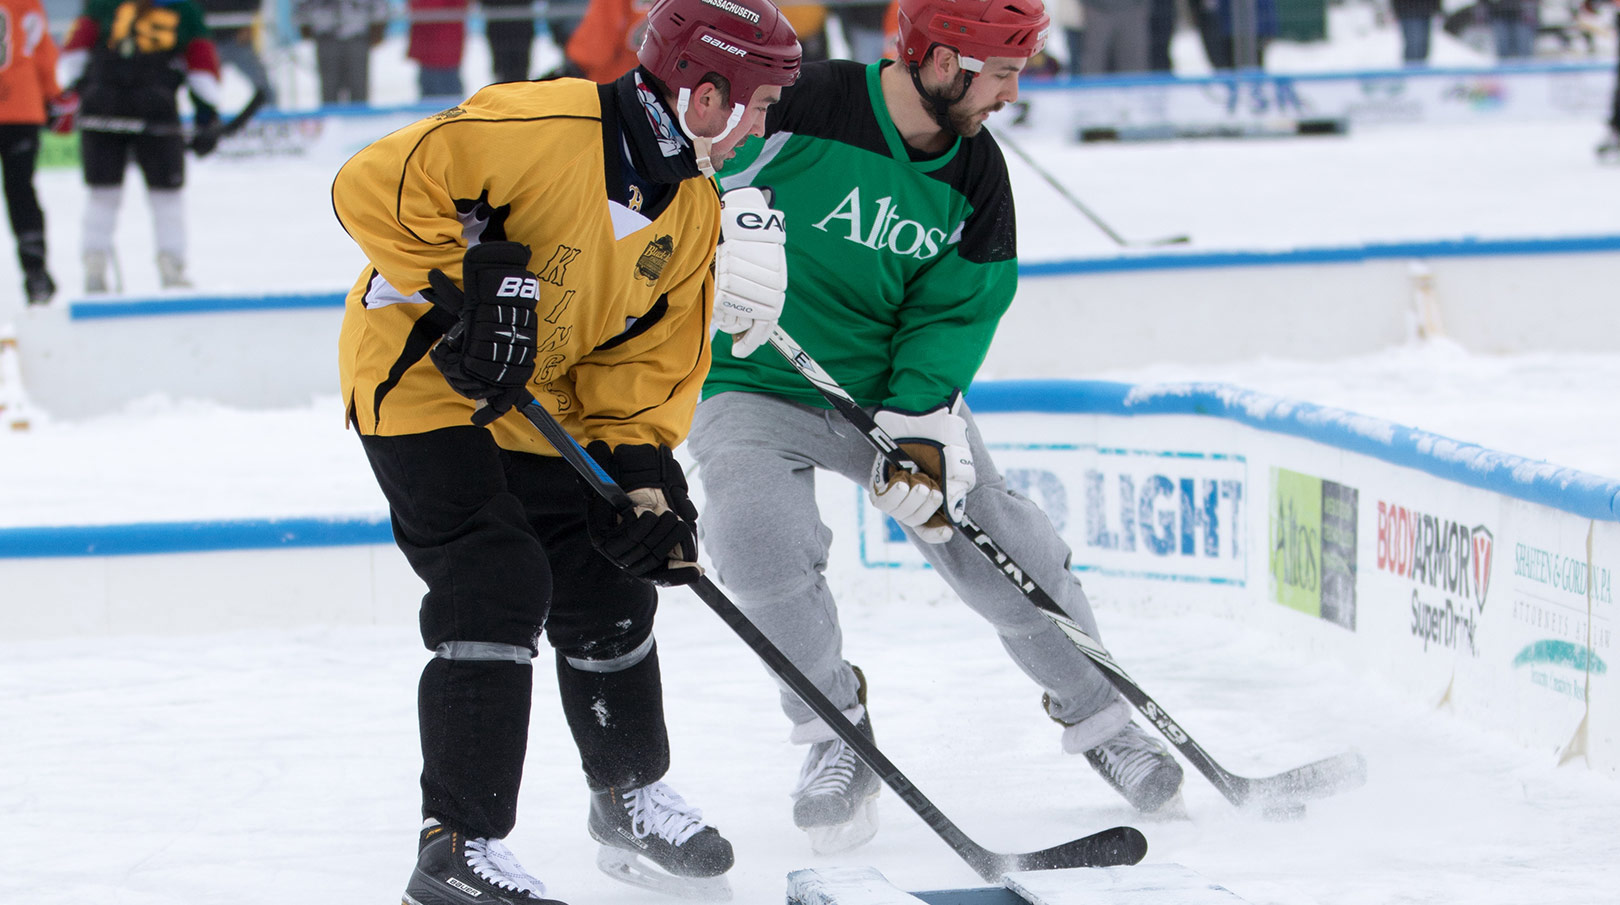 Black Ice Pond Hockey Game